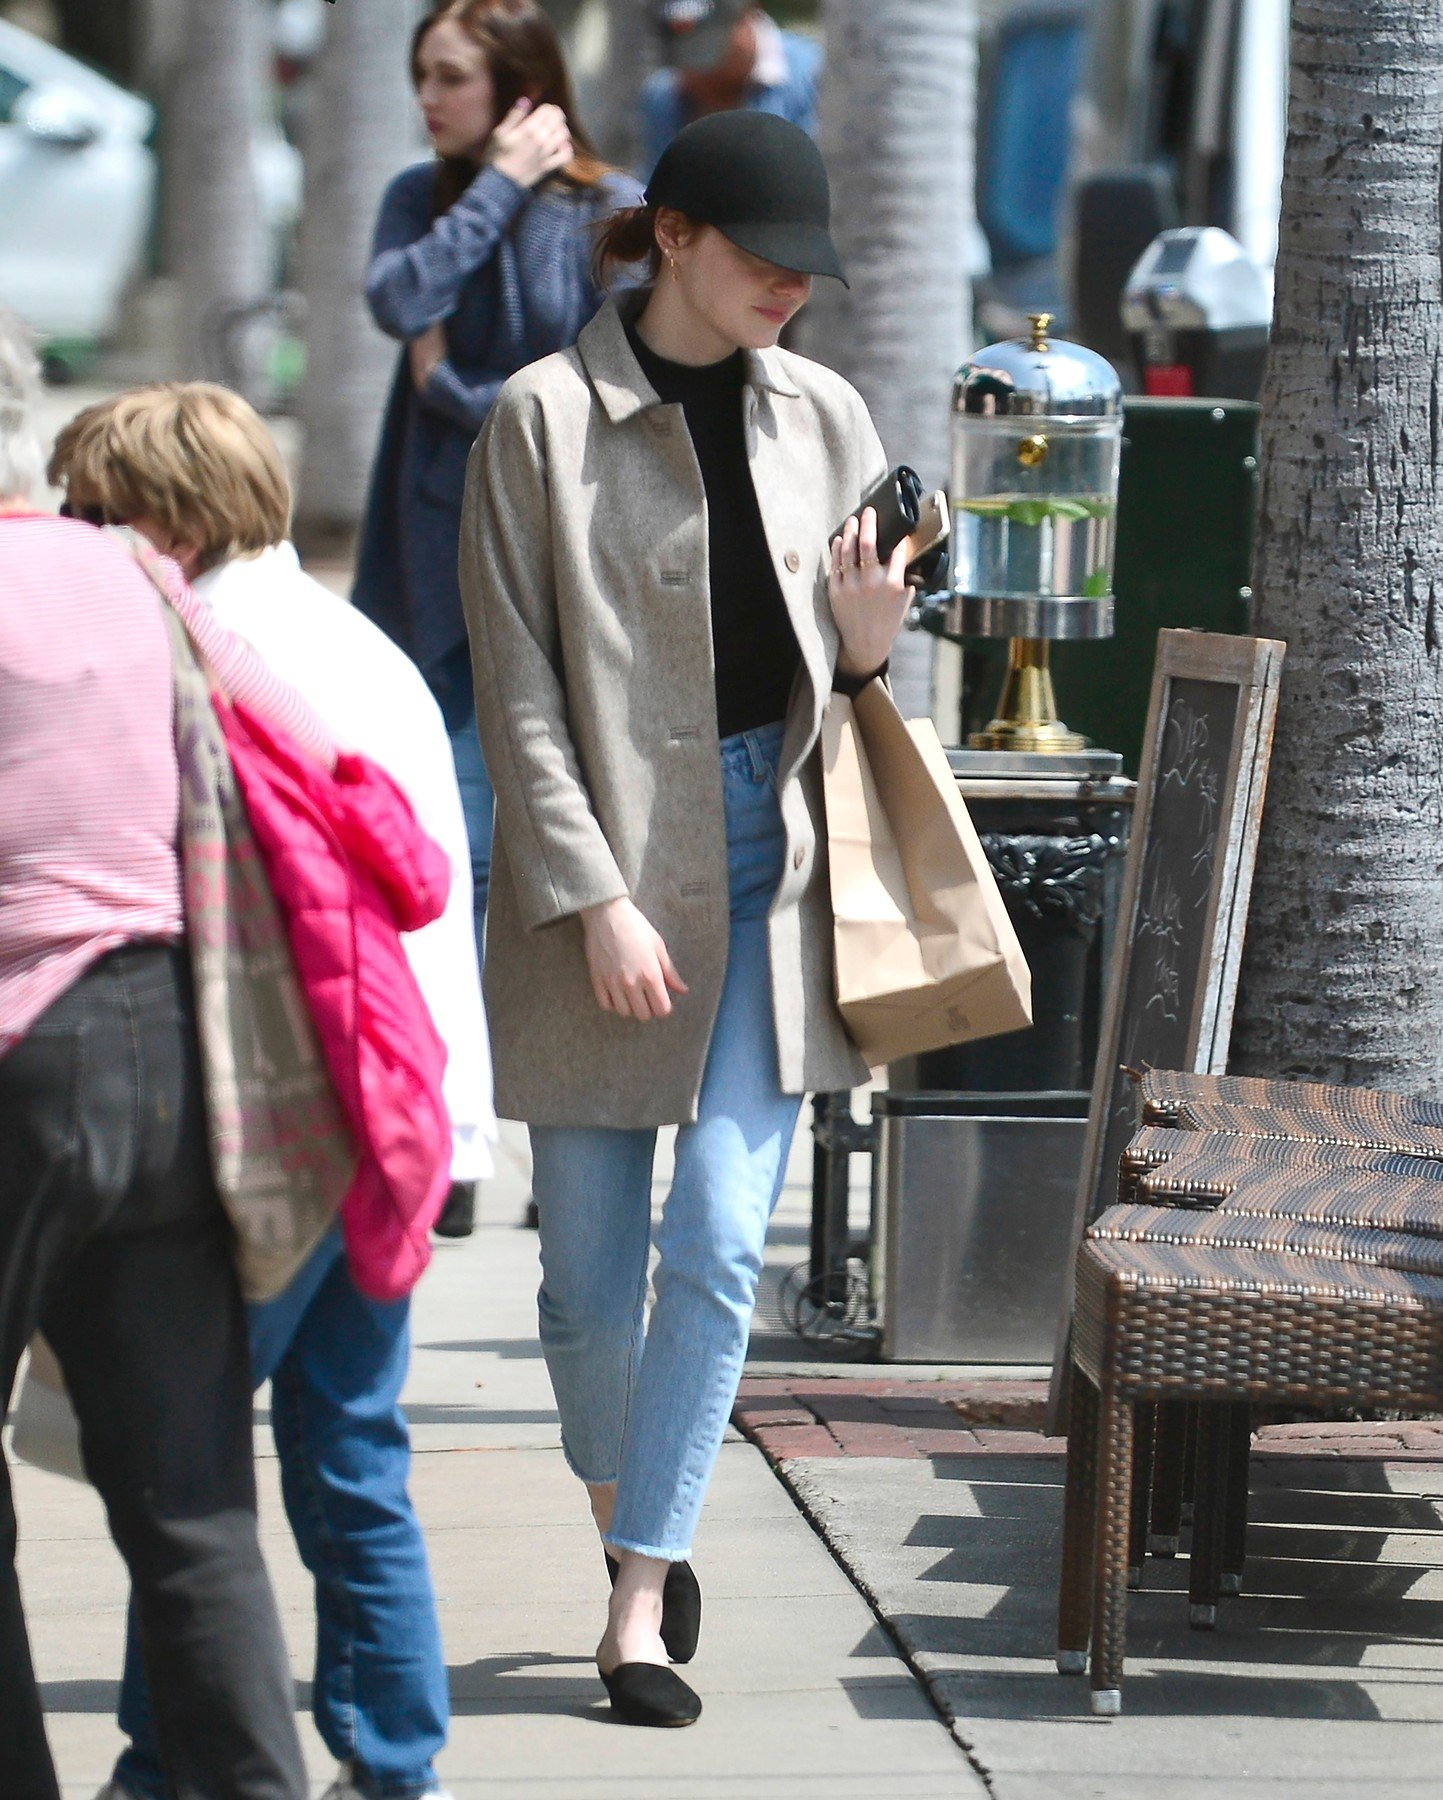 EXCLUSIVE: Emma Stone makes a rare public outing as she is seen wearing an engagement ring amid rumors her boyfriend Dave Mccary proposed to her over the holidays. 03 Apr 2019, Image: 424252932, License: Rights-managed, Restrictions: World Rights, Model Release: no, Credit line: Profimedia, Mega Agency